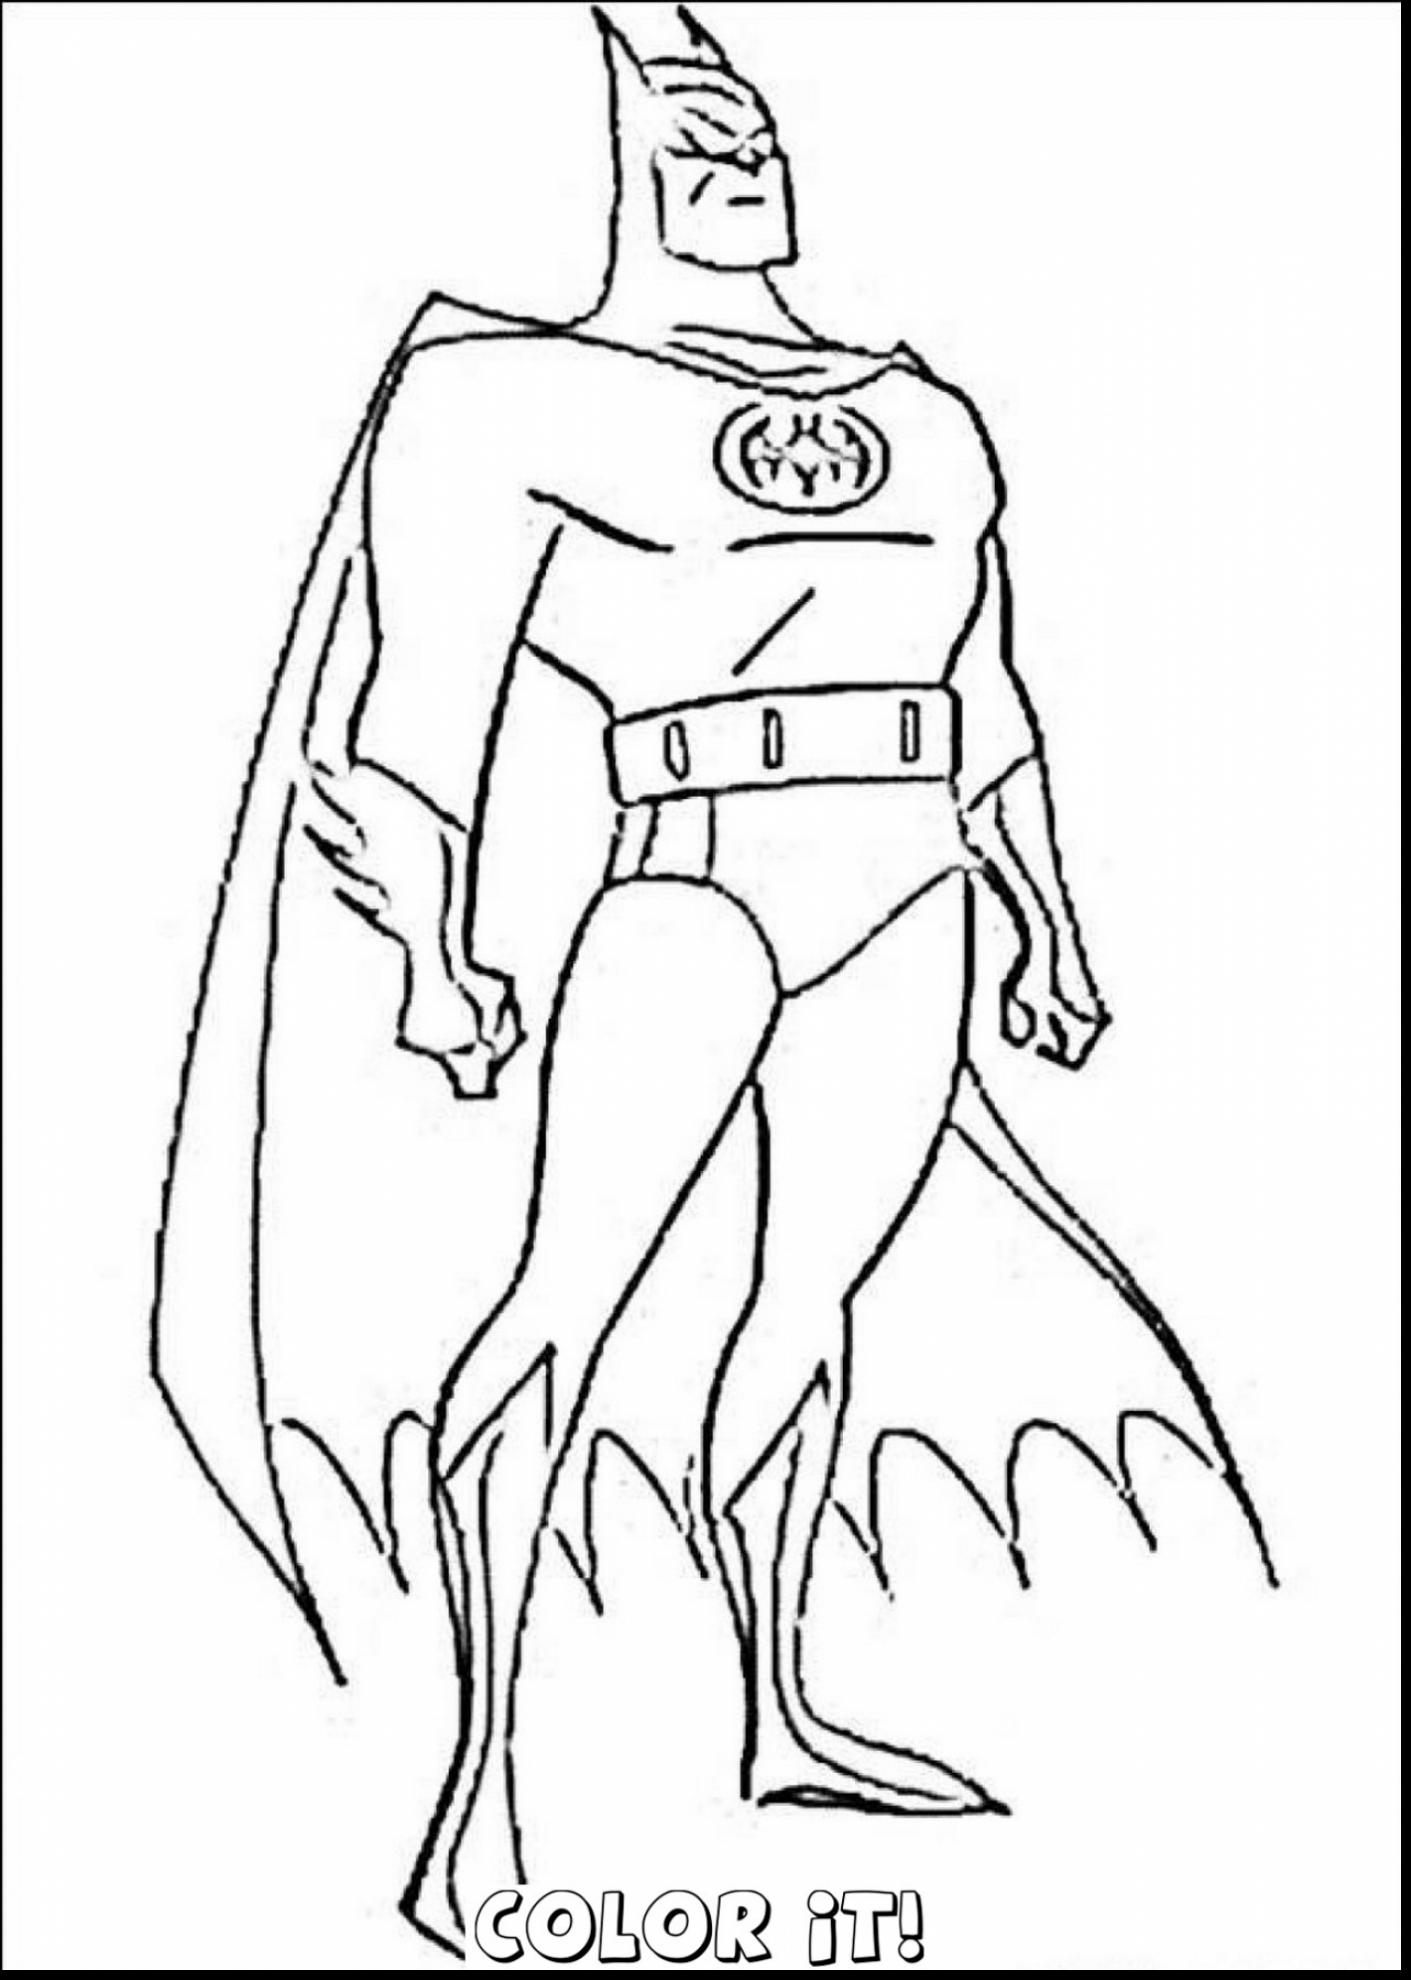 Simple Batman Coloring Pages At Getdrawings Com Free For Personal